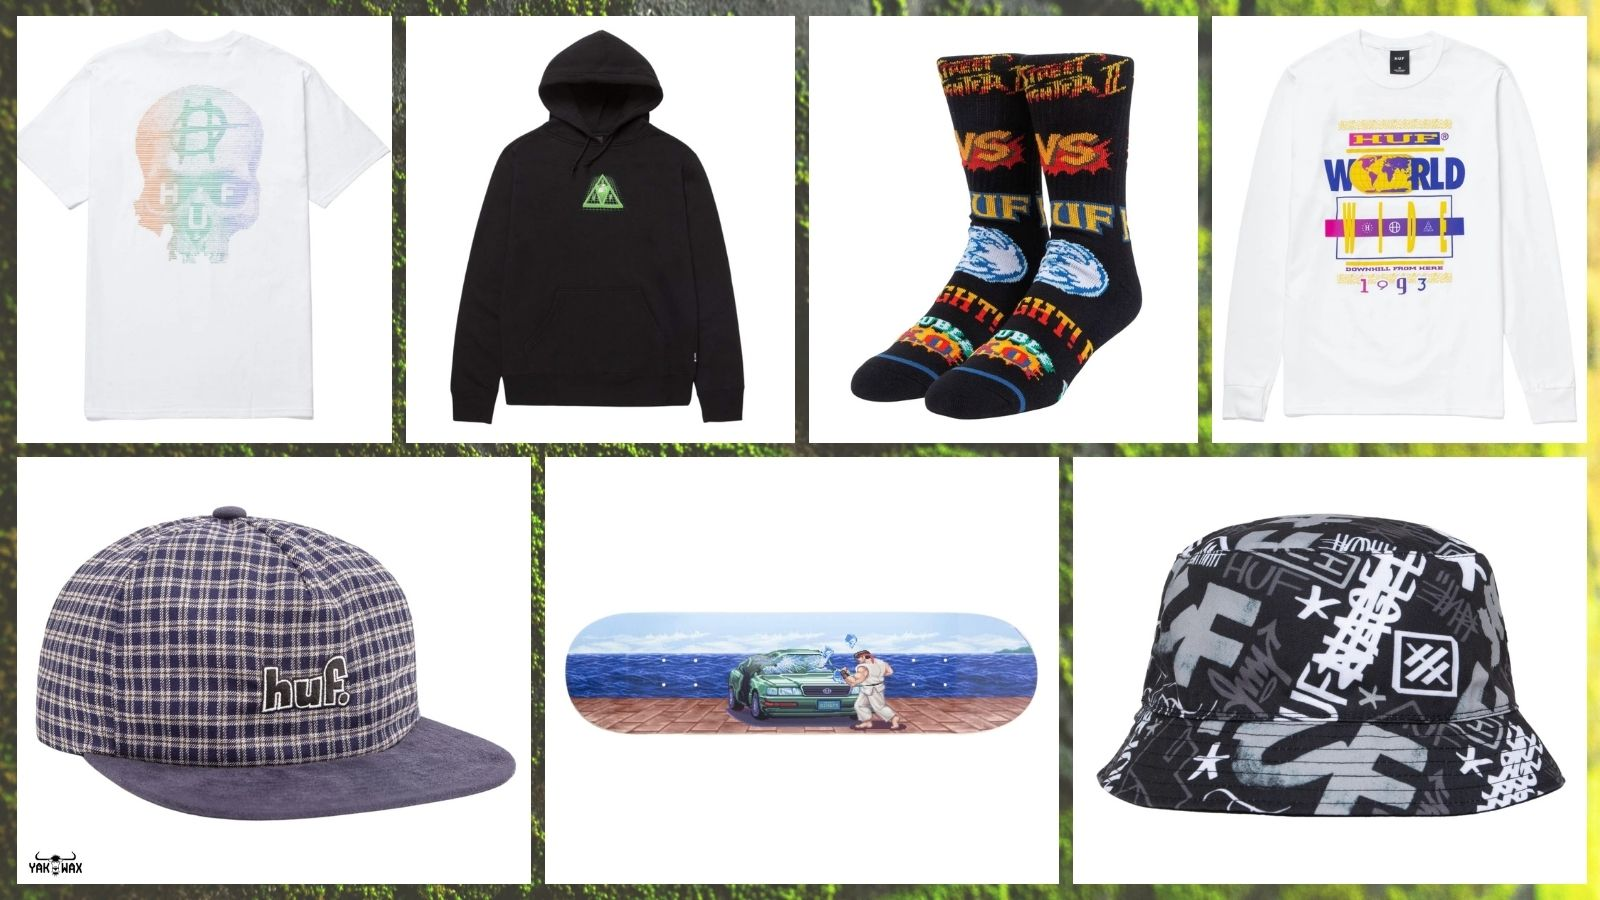 Huf-Skate-Clothing-Accessories-Spring_2021